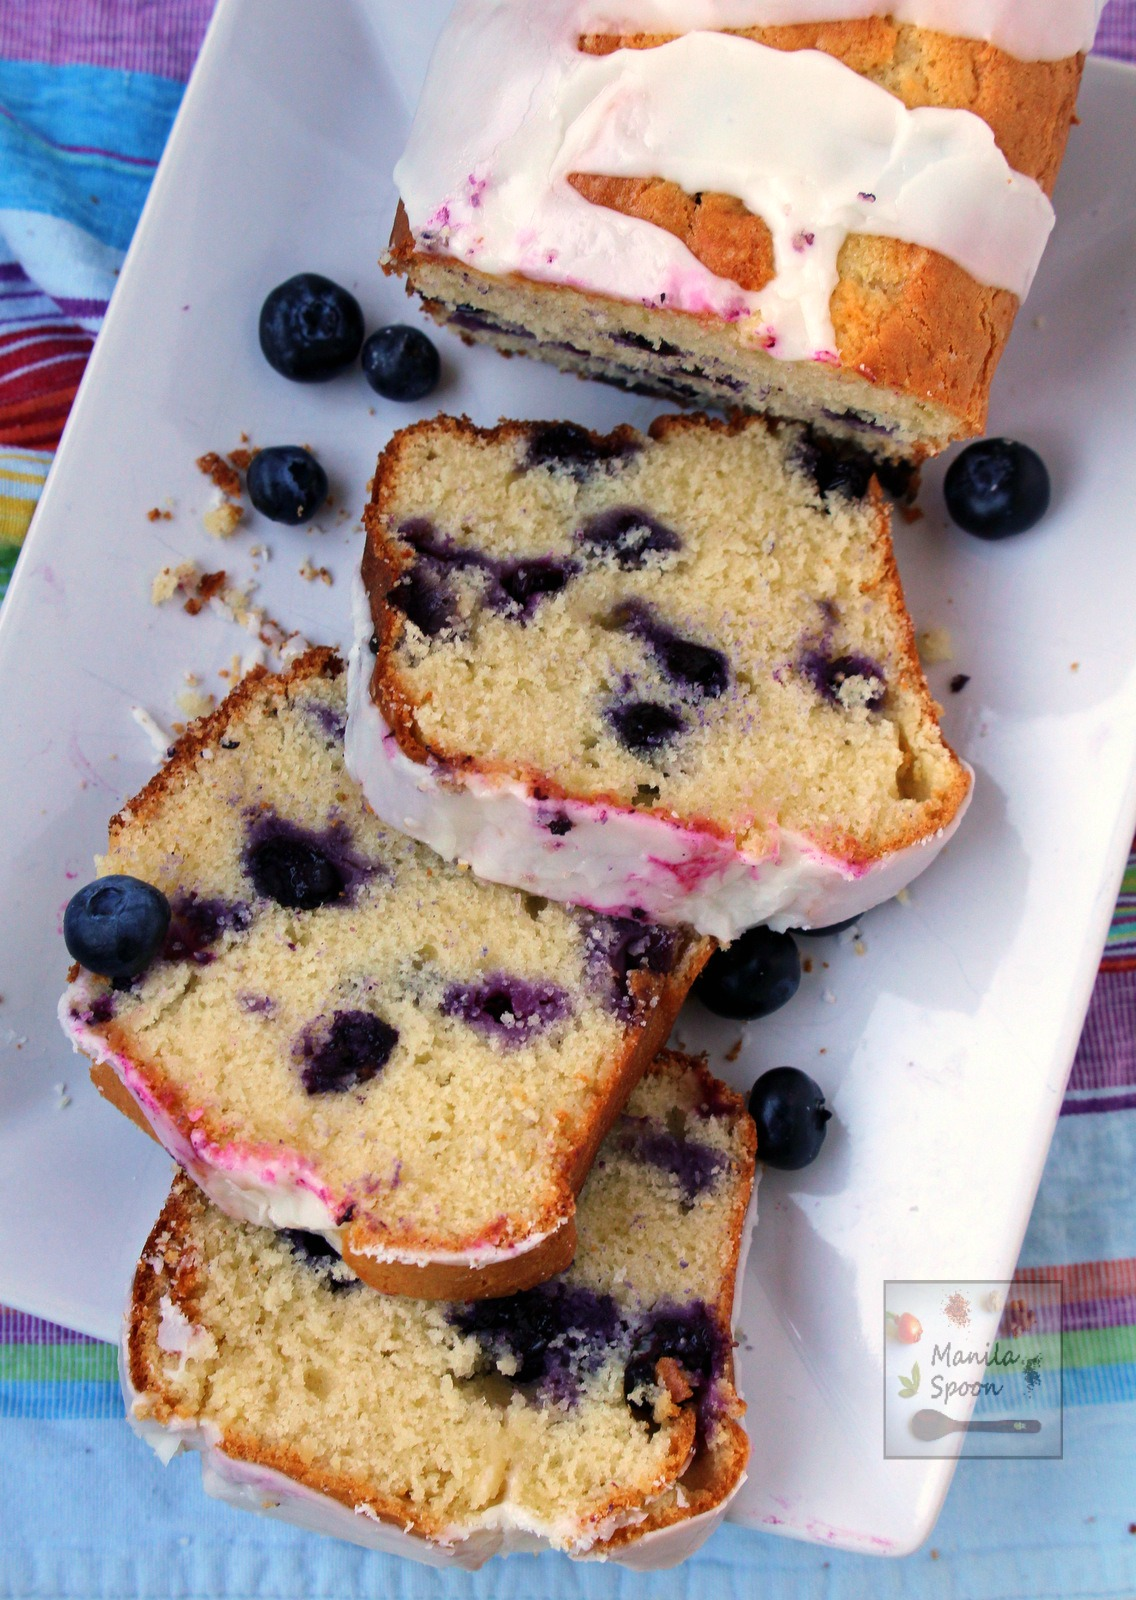 Bursting with juicy blueberries, this moist and delicious Blueberry Ricotta Pound Cake is summer's perfect cake! | manilaspoon.com